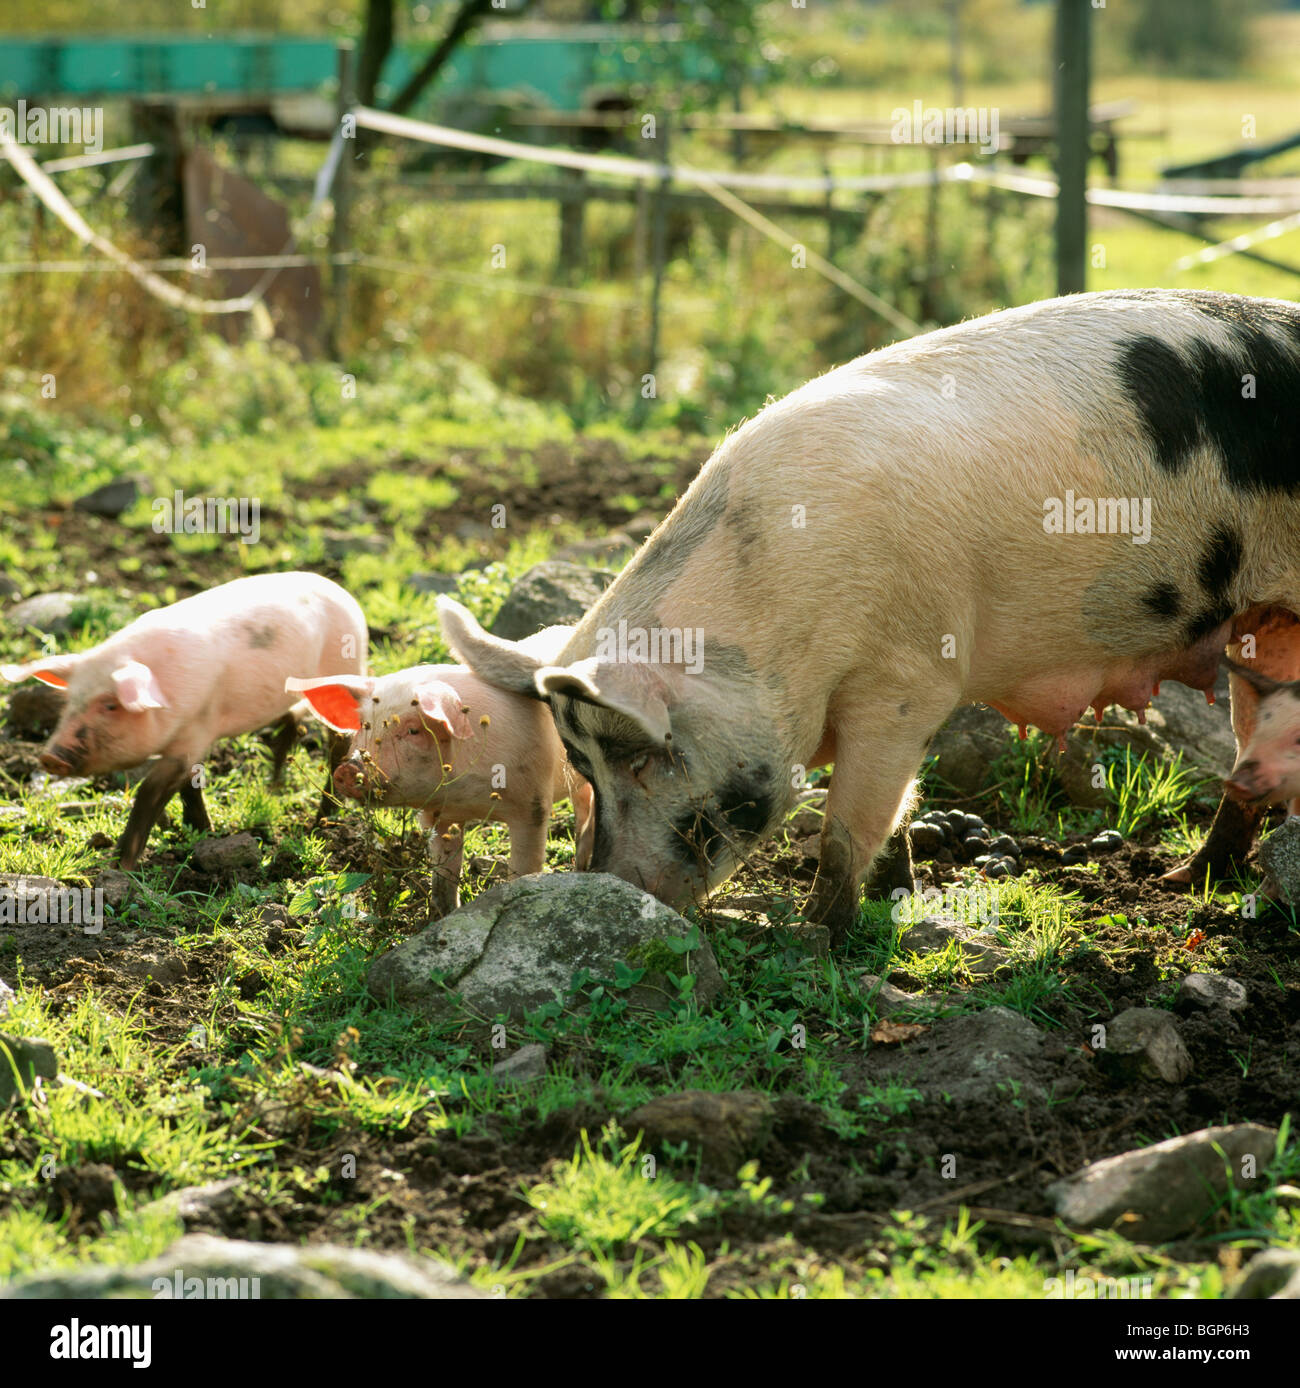 Pigs at a farm, Sweden. - Stock Image